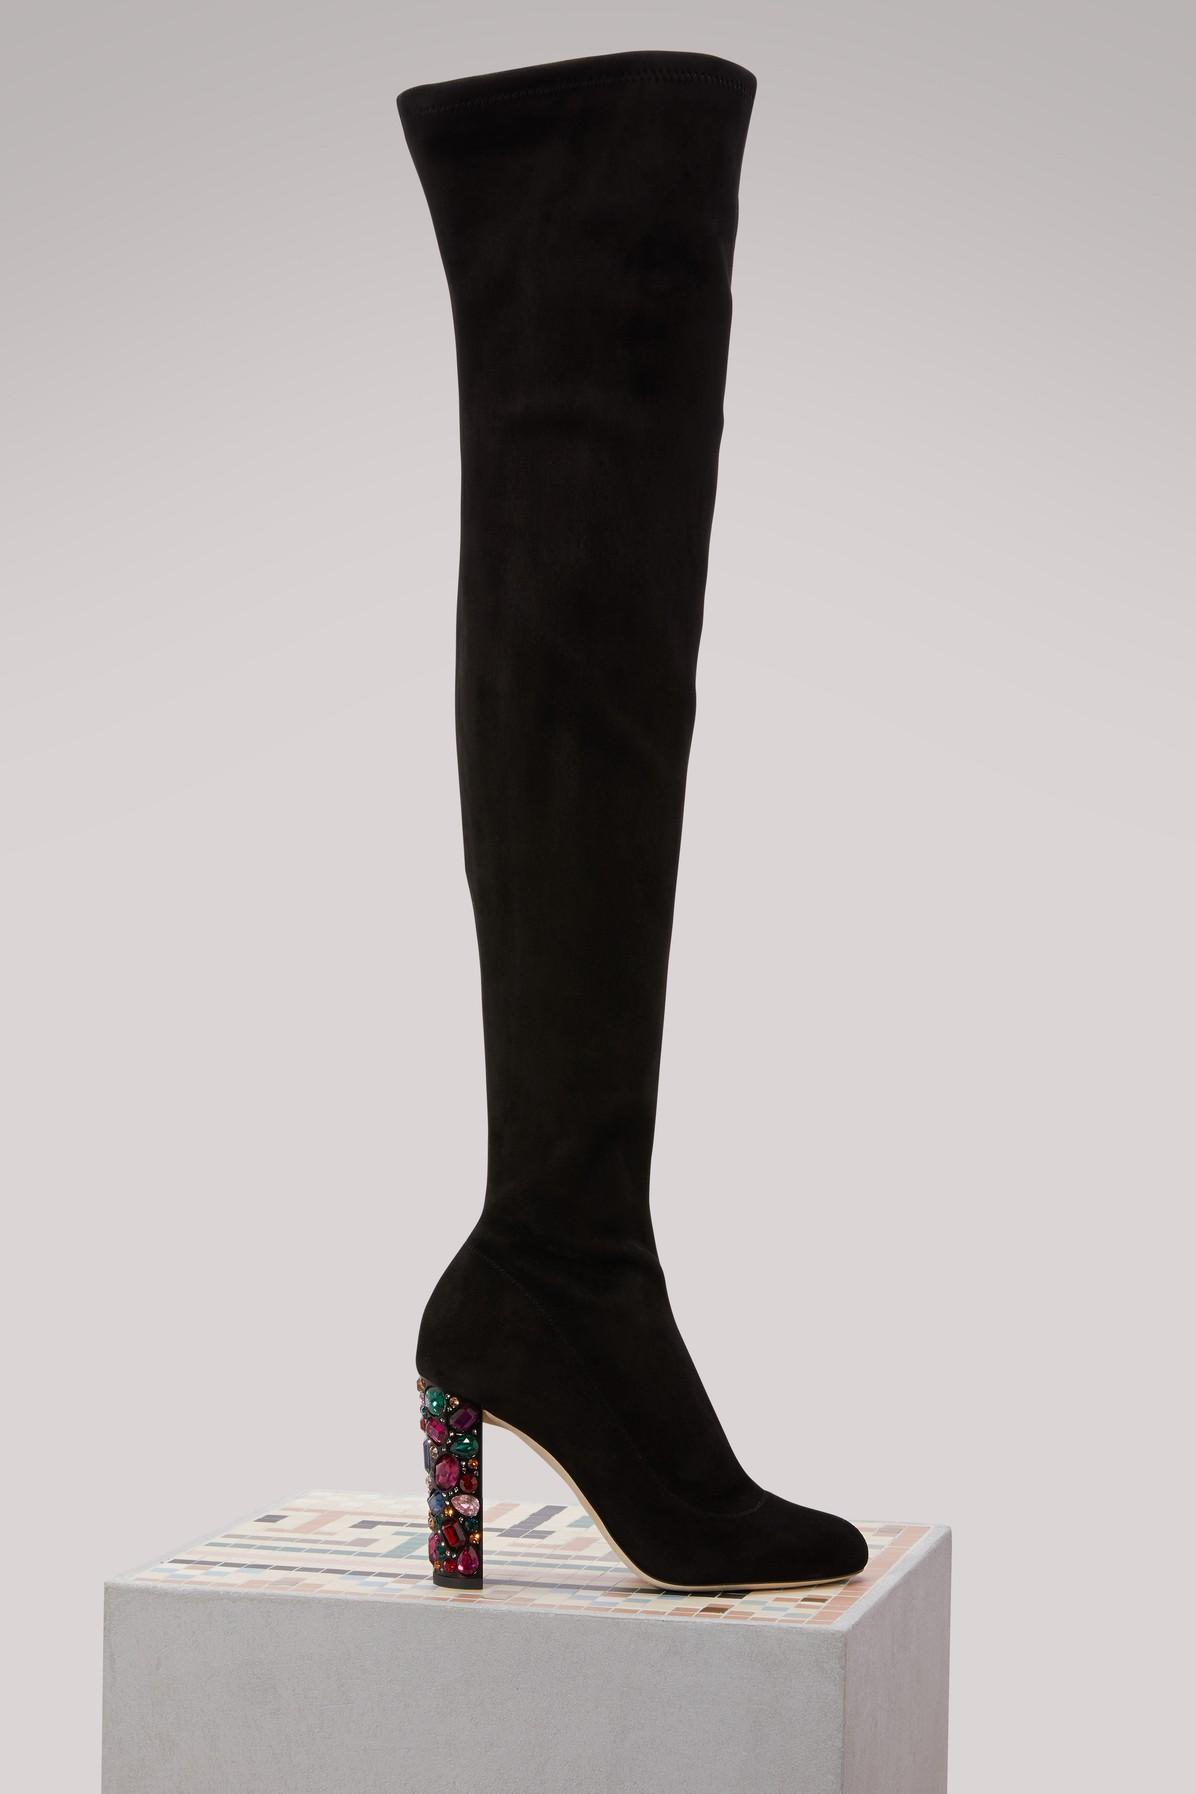 f13be2eb9e61 Jimmy Choo Mya 100 Black Stretch Suede Over The Knee Boots With Embellished  Heel